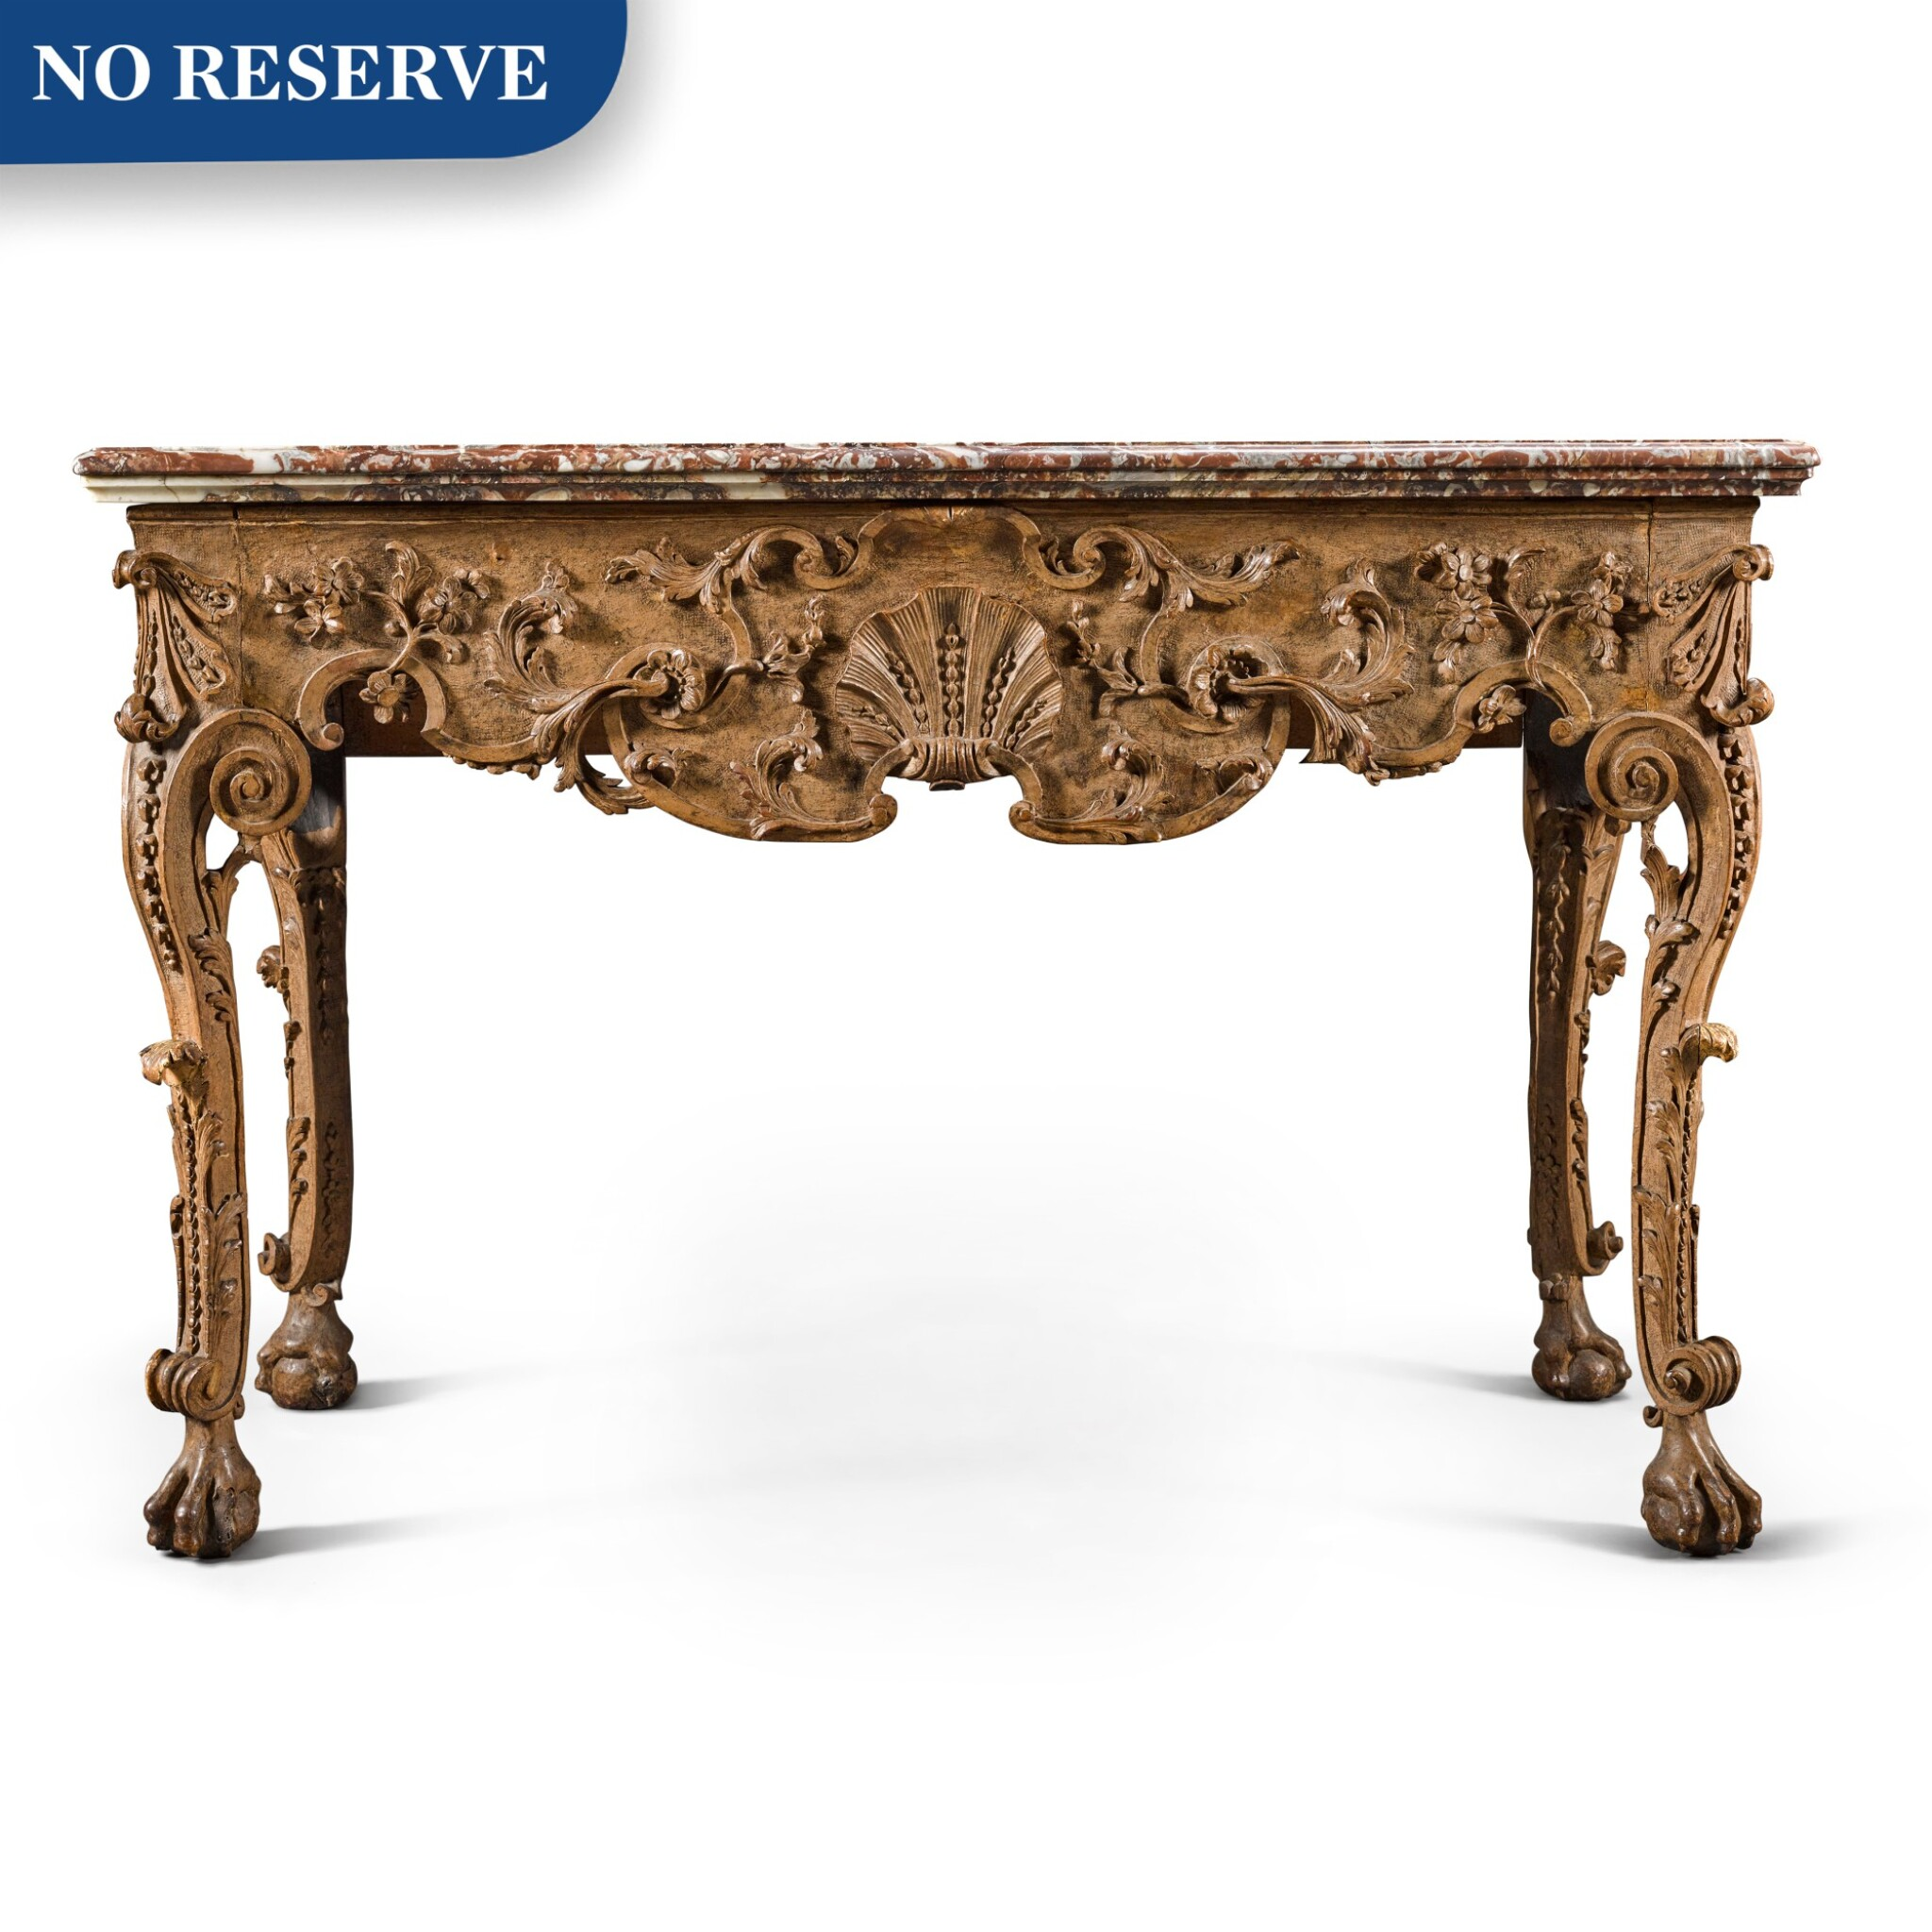 View full screen - View 1 of Lot 54. A Franco-Flemish carved and stained walnut console table, probably Liège, early 18th century.